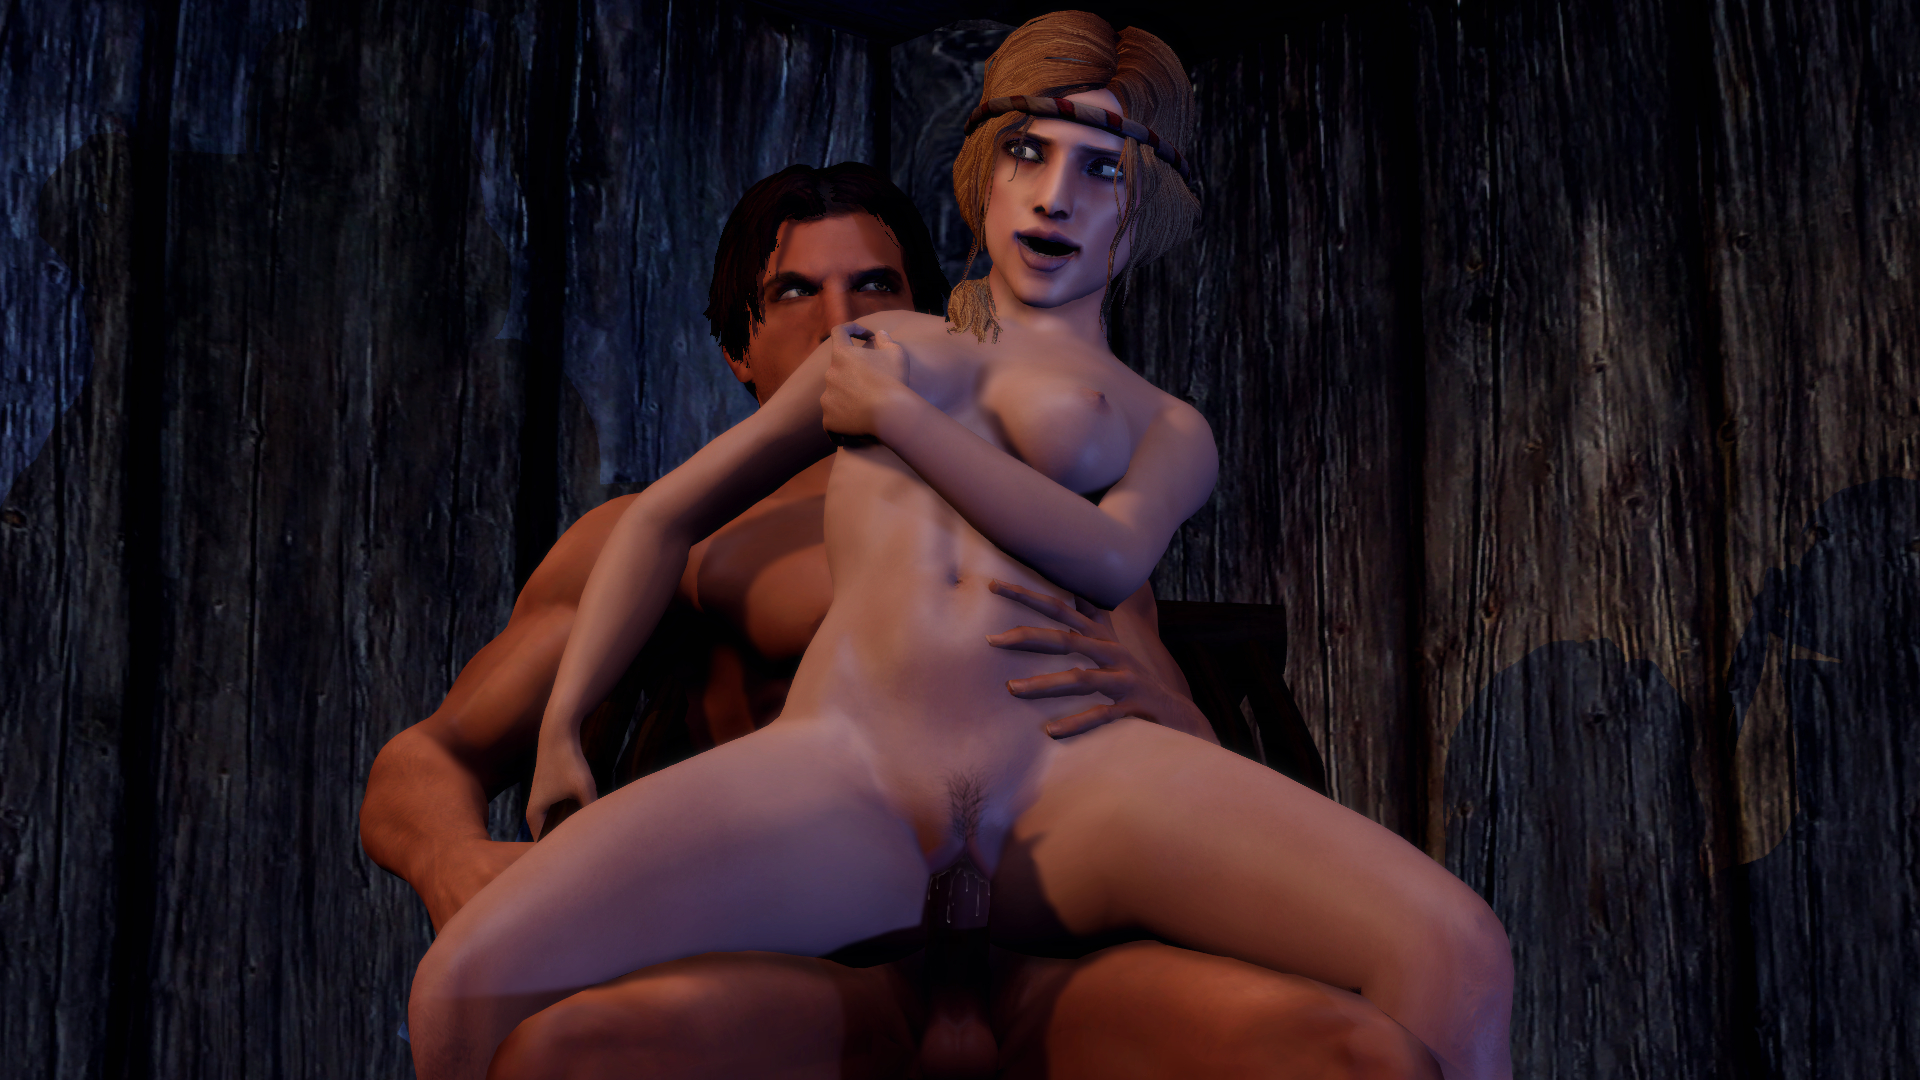 Assassin's creed sex naked naked scene